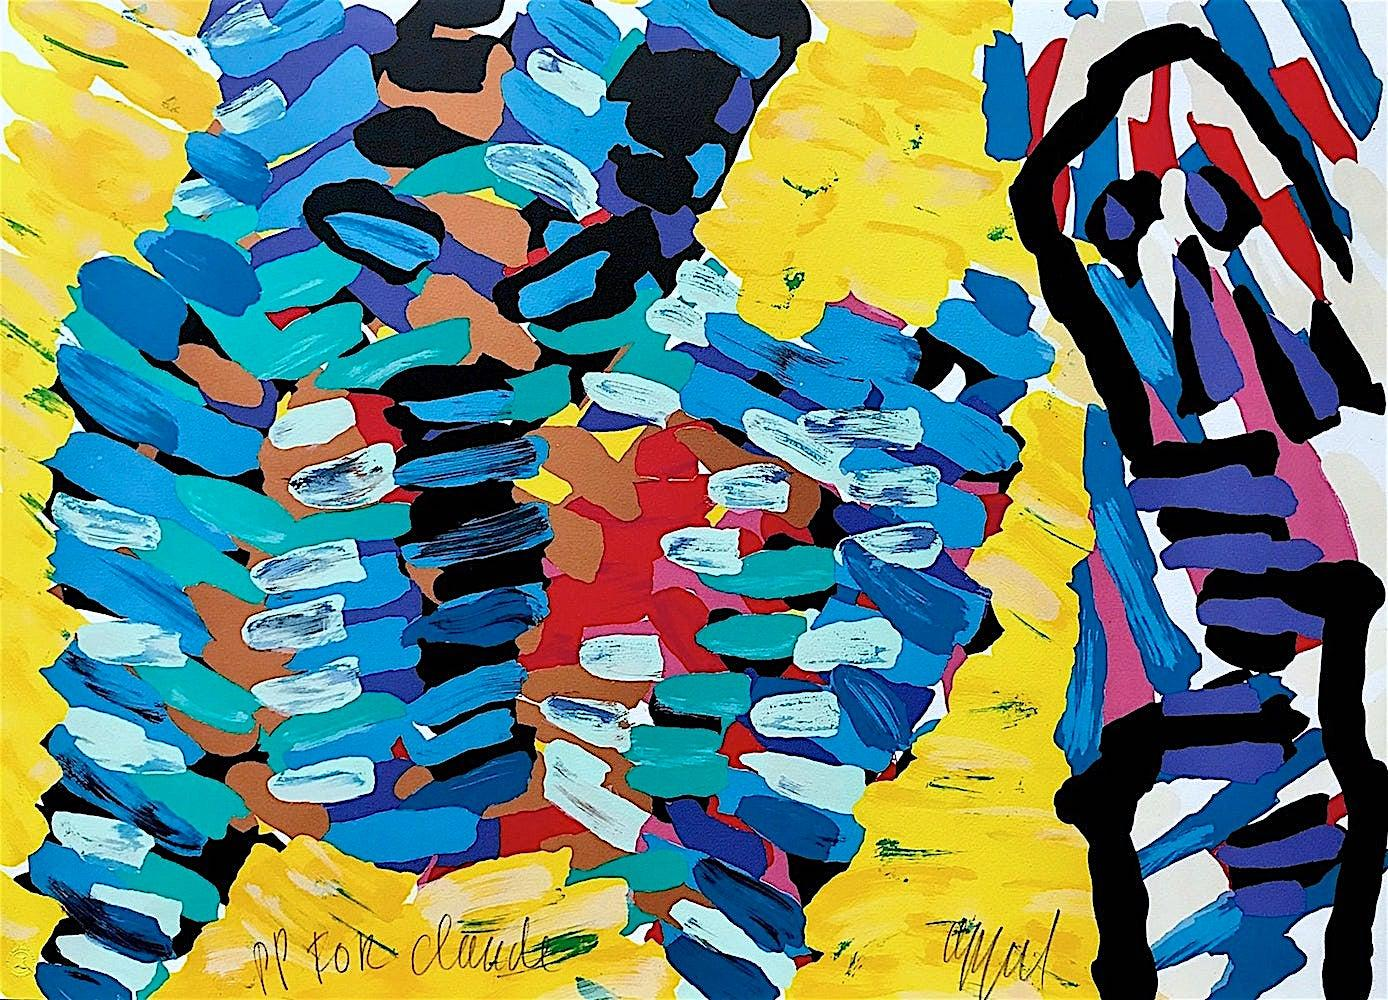 YELLOW FIELDS Signed Lithograph Abstract Animal and Person Yellow Blue Red Black